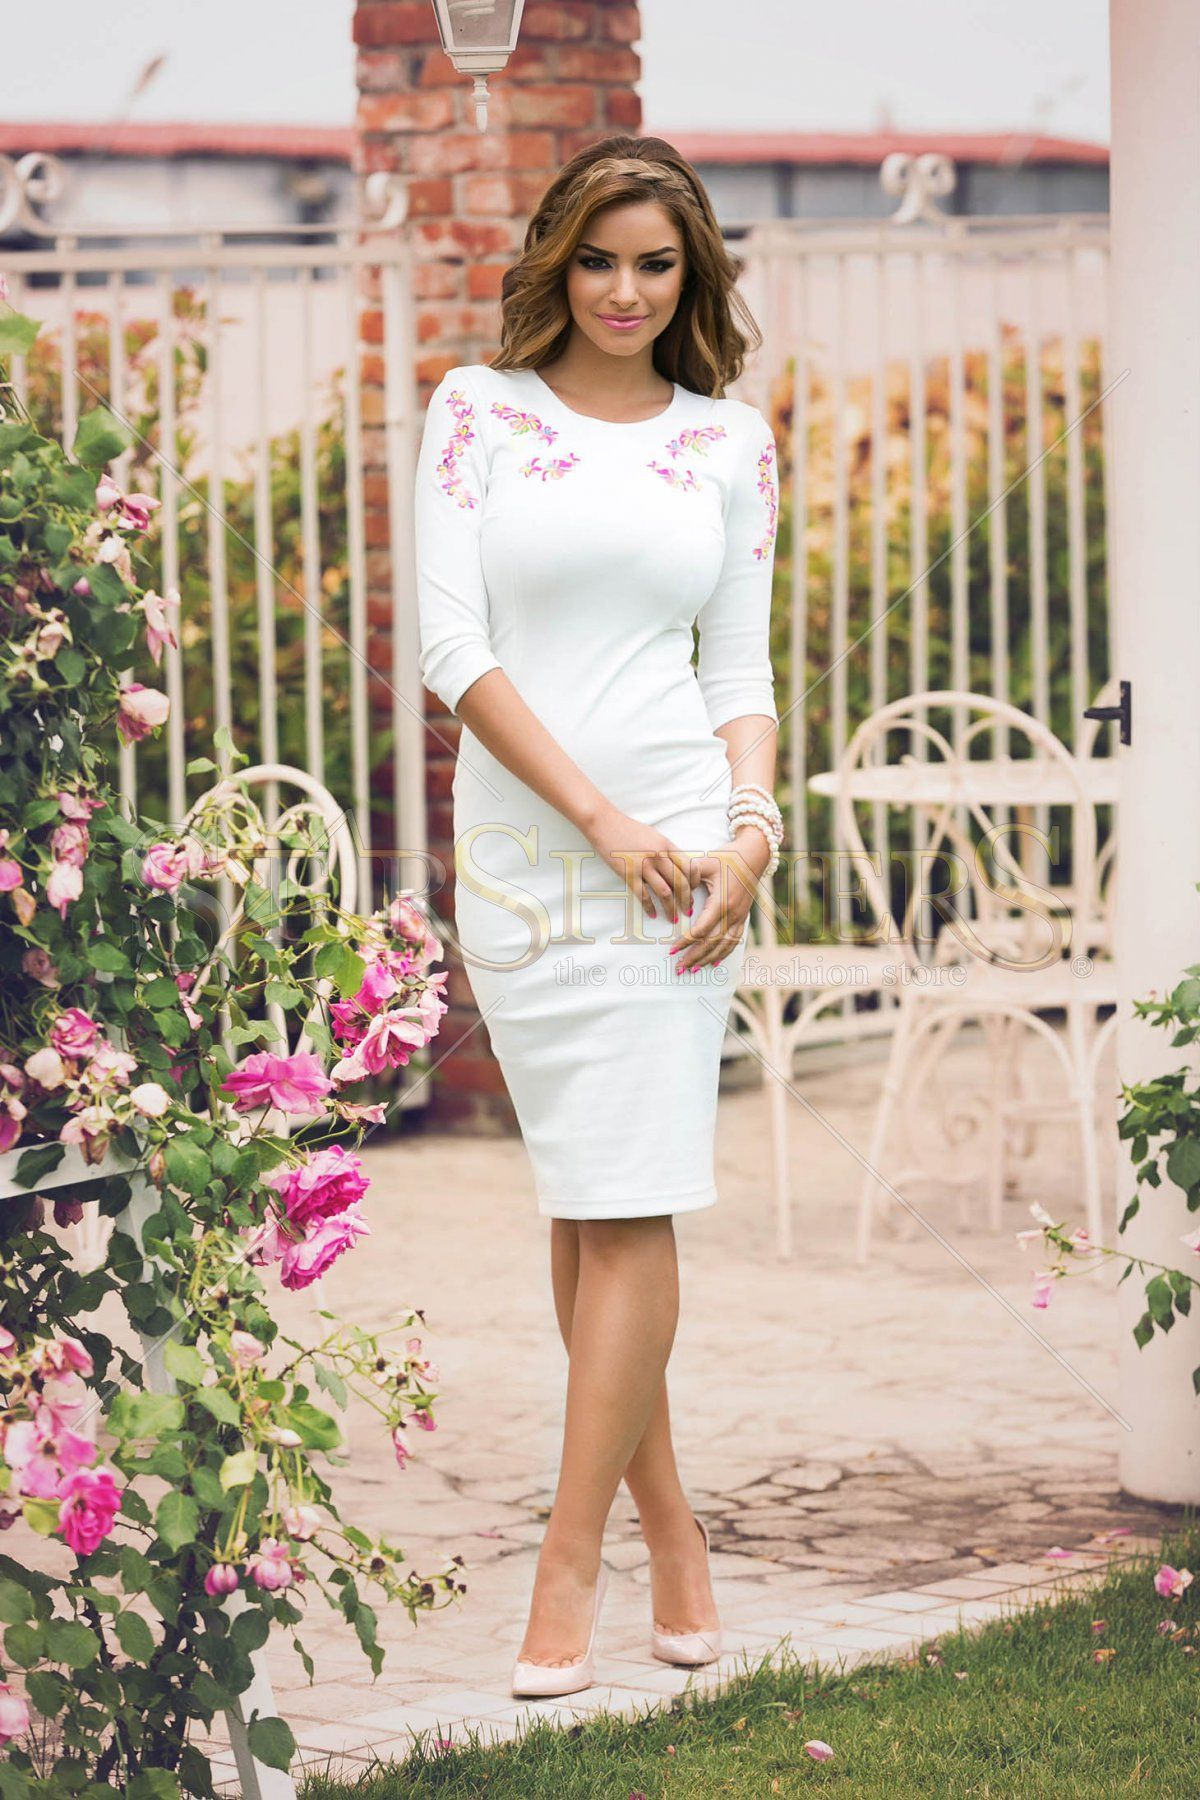 Wedding dresses for thin figures Embroidered Oasis Dress  Classy Lady  Pinterest  Oasis dress